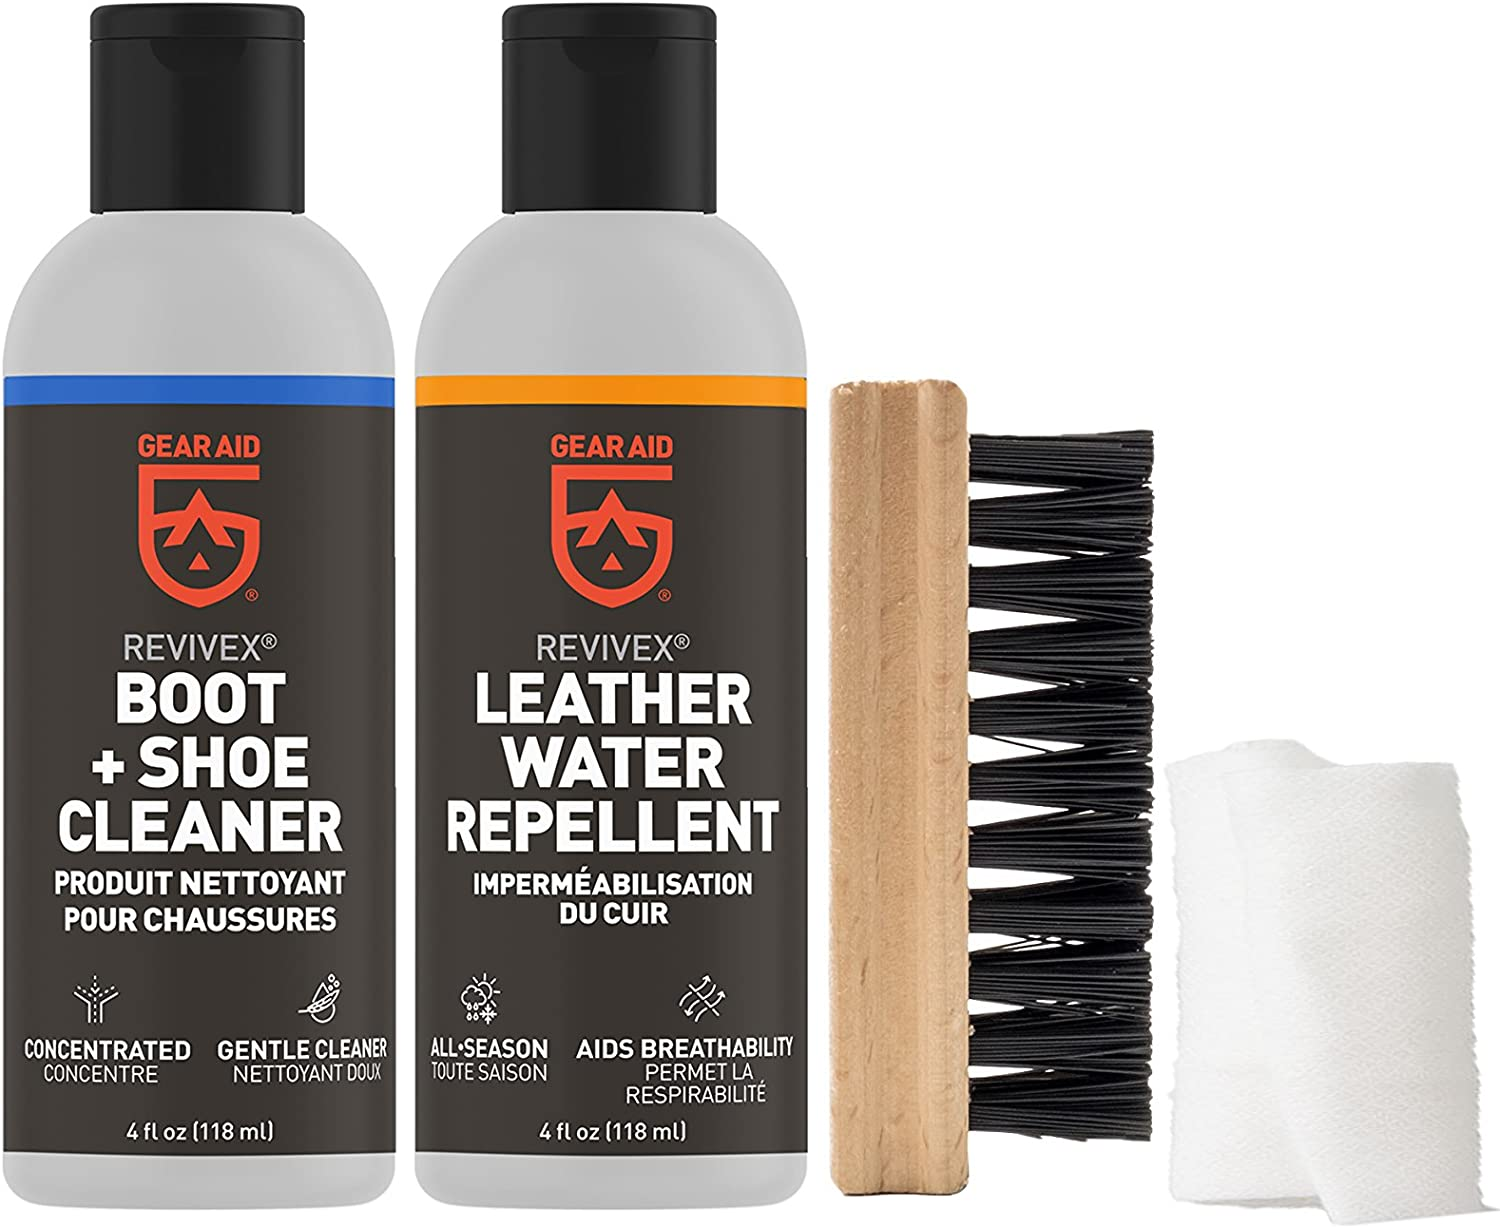 B002HH4H80 Gear Aid Revivex Leather Boot Care Kit with Water Repellent, Cleaner, Brush and Cloth 810lLRppgNL